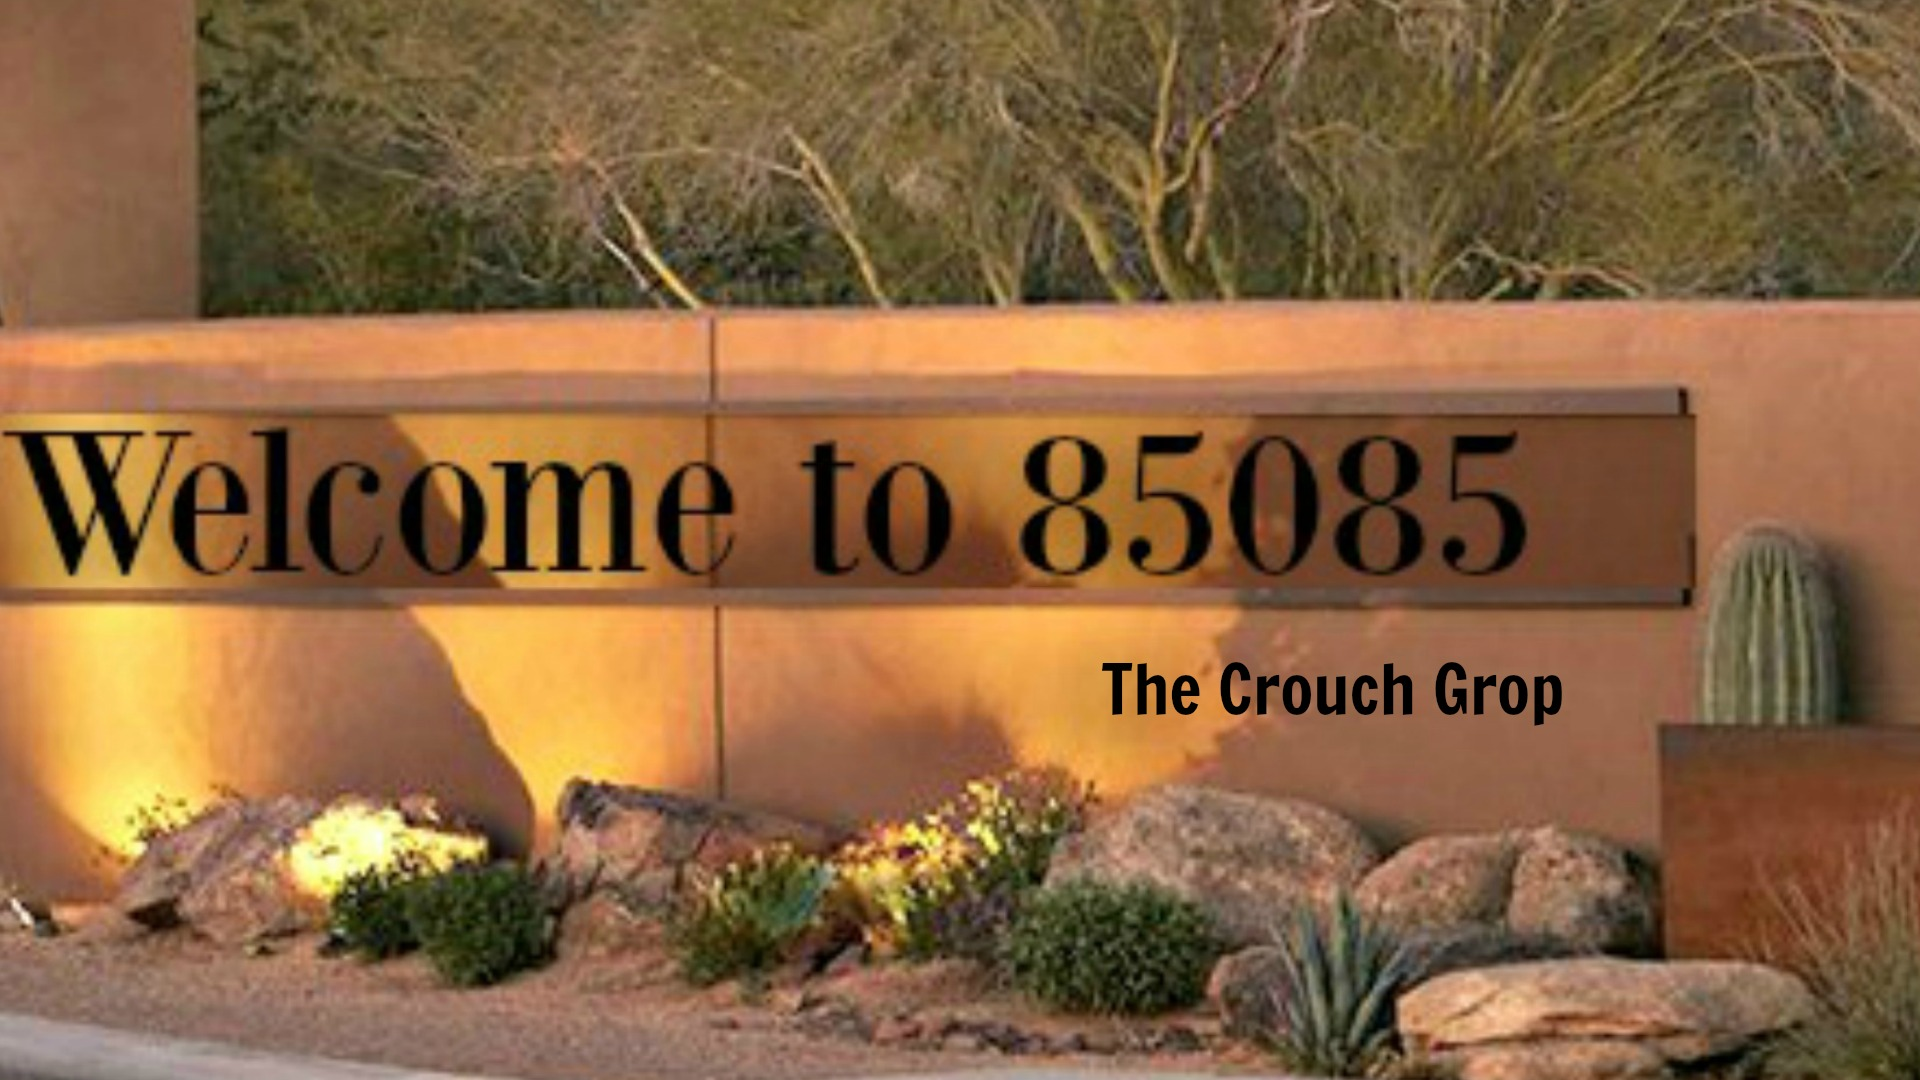 85085 Homes for sale sign